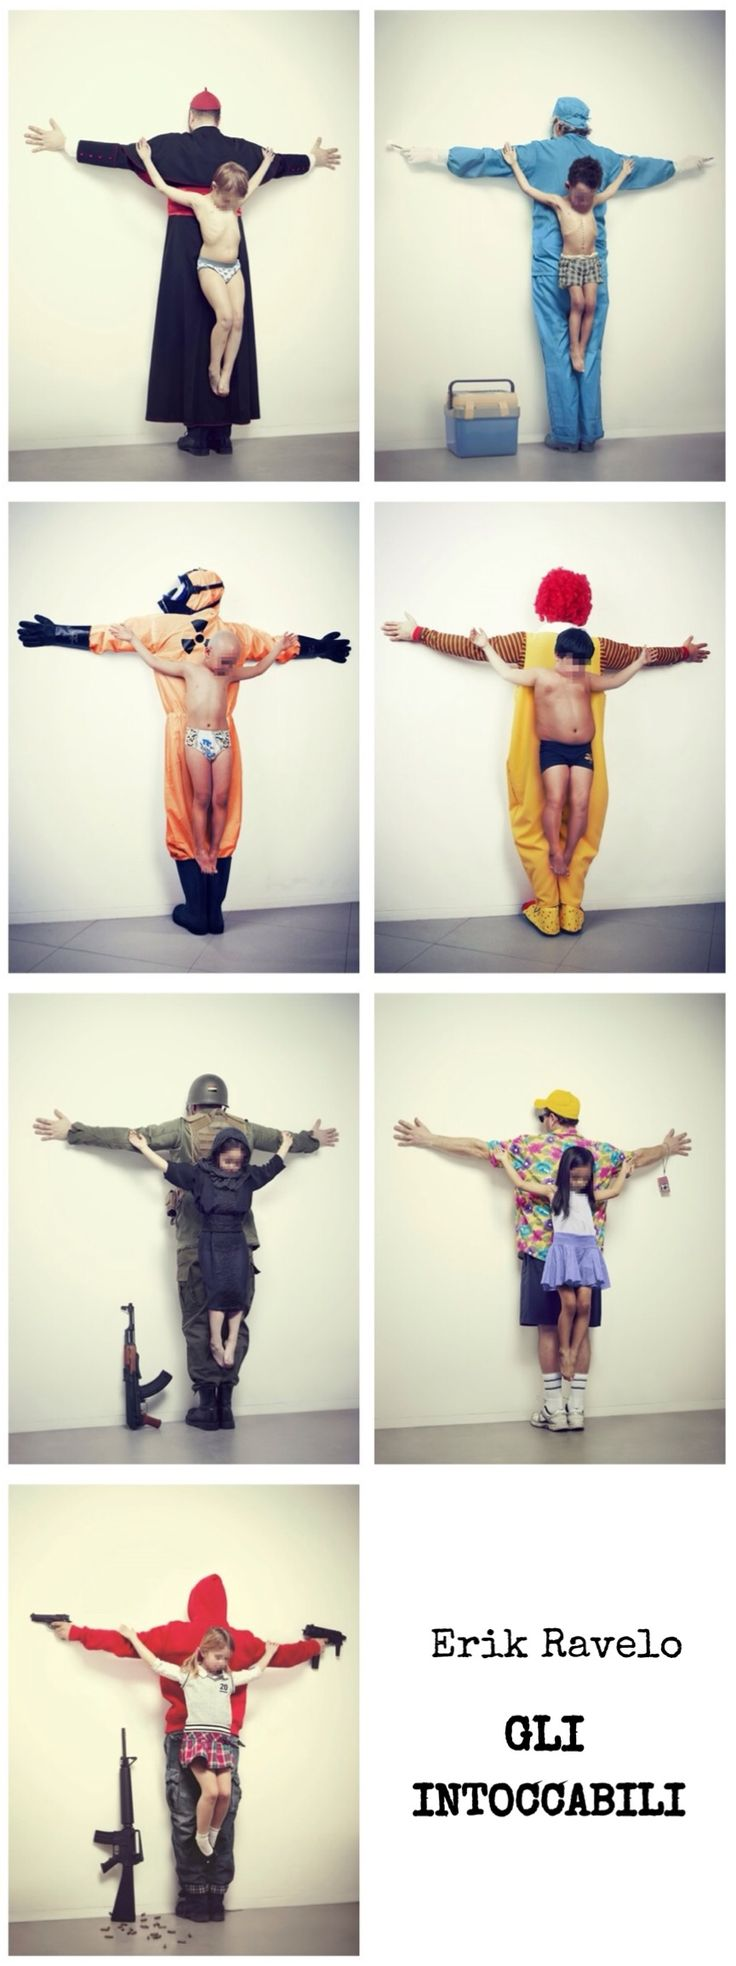 "Series produced by Erik Ravelo. ""...seeks the right of children to be protected and report abuses [the children] suffer especially in countries like Brazil, Syria, Thailand, United States, and Japan""."